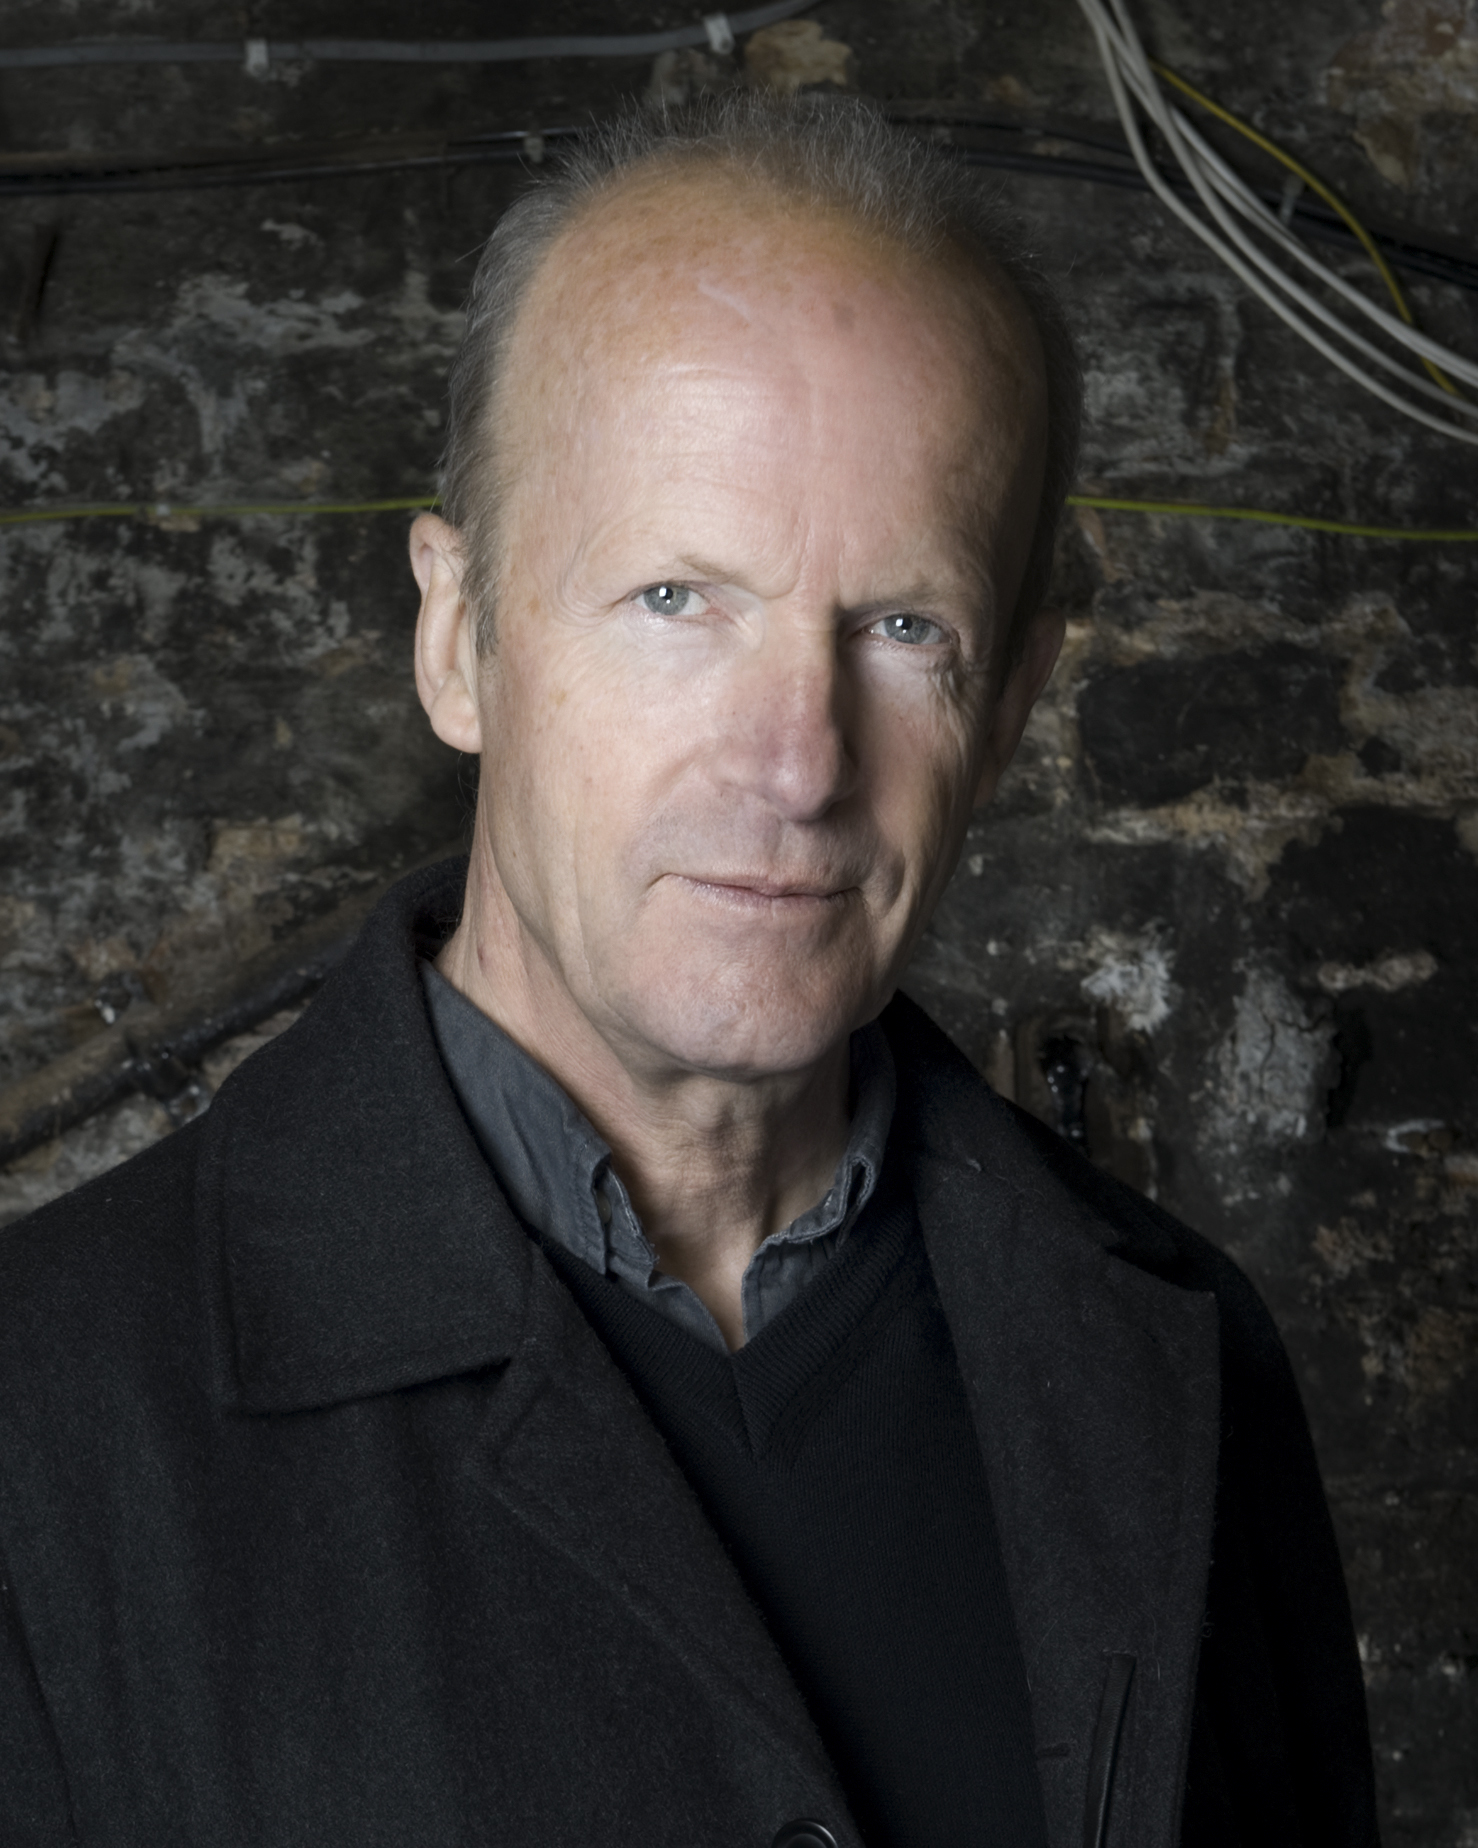 Congrats to Jim Crace, winner of the James Tait Black Prize